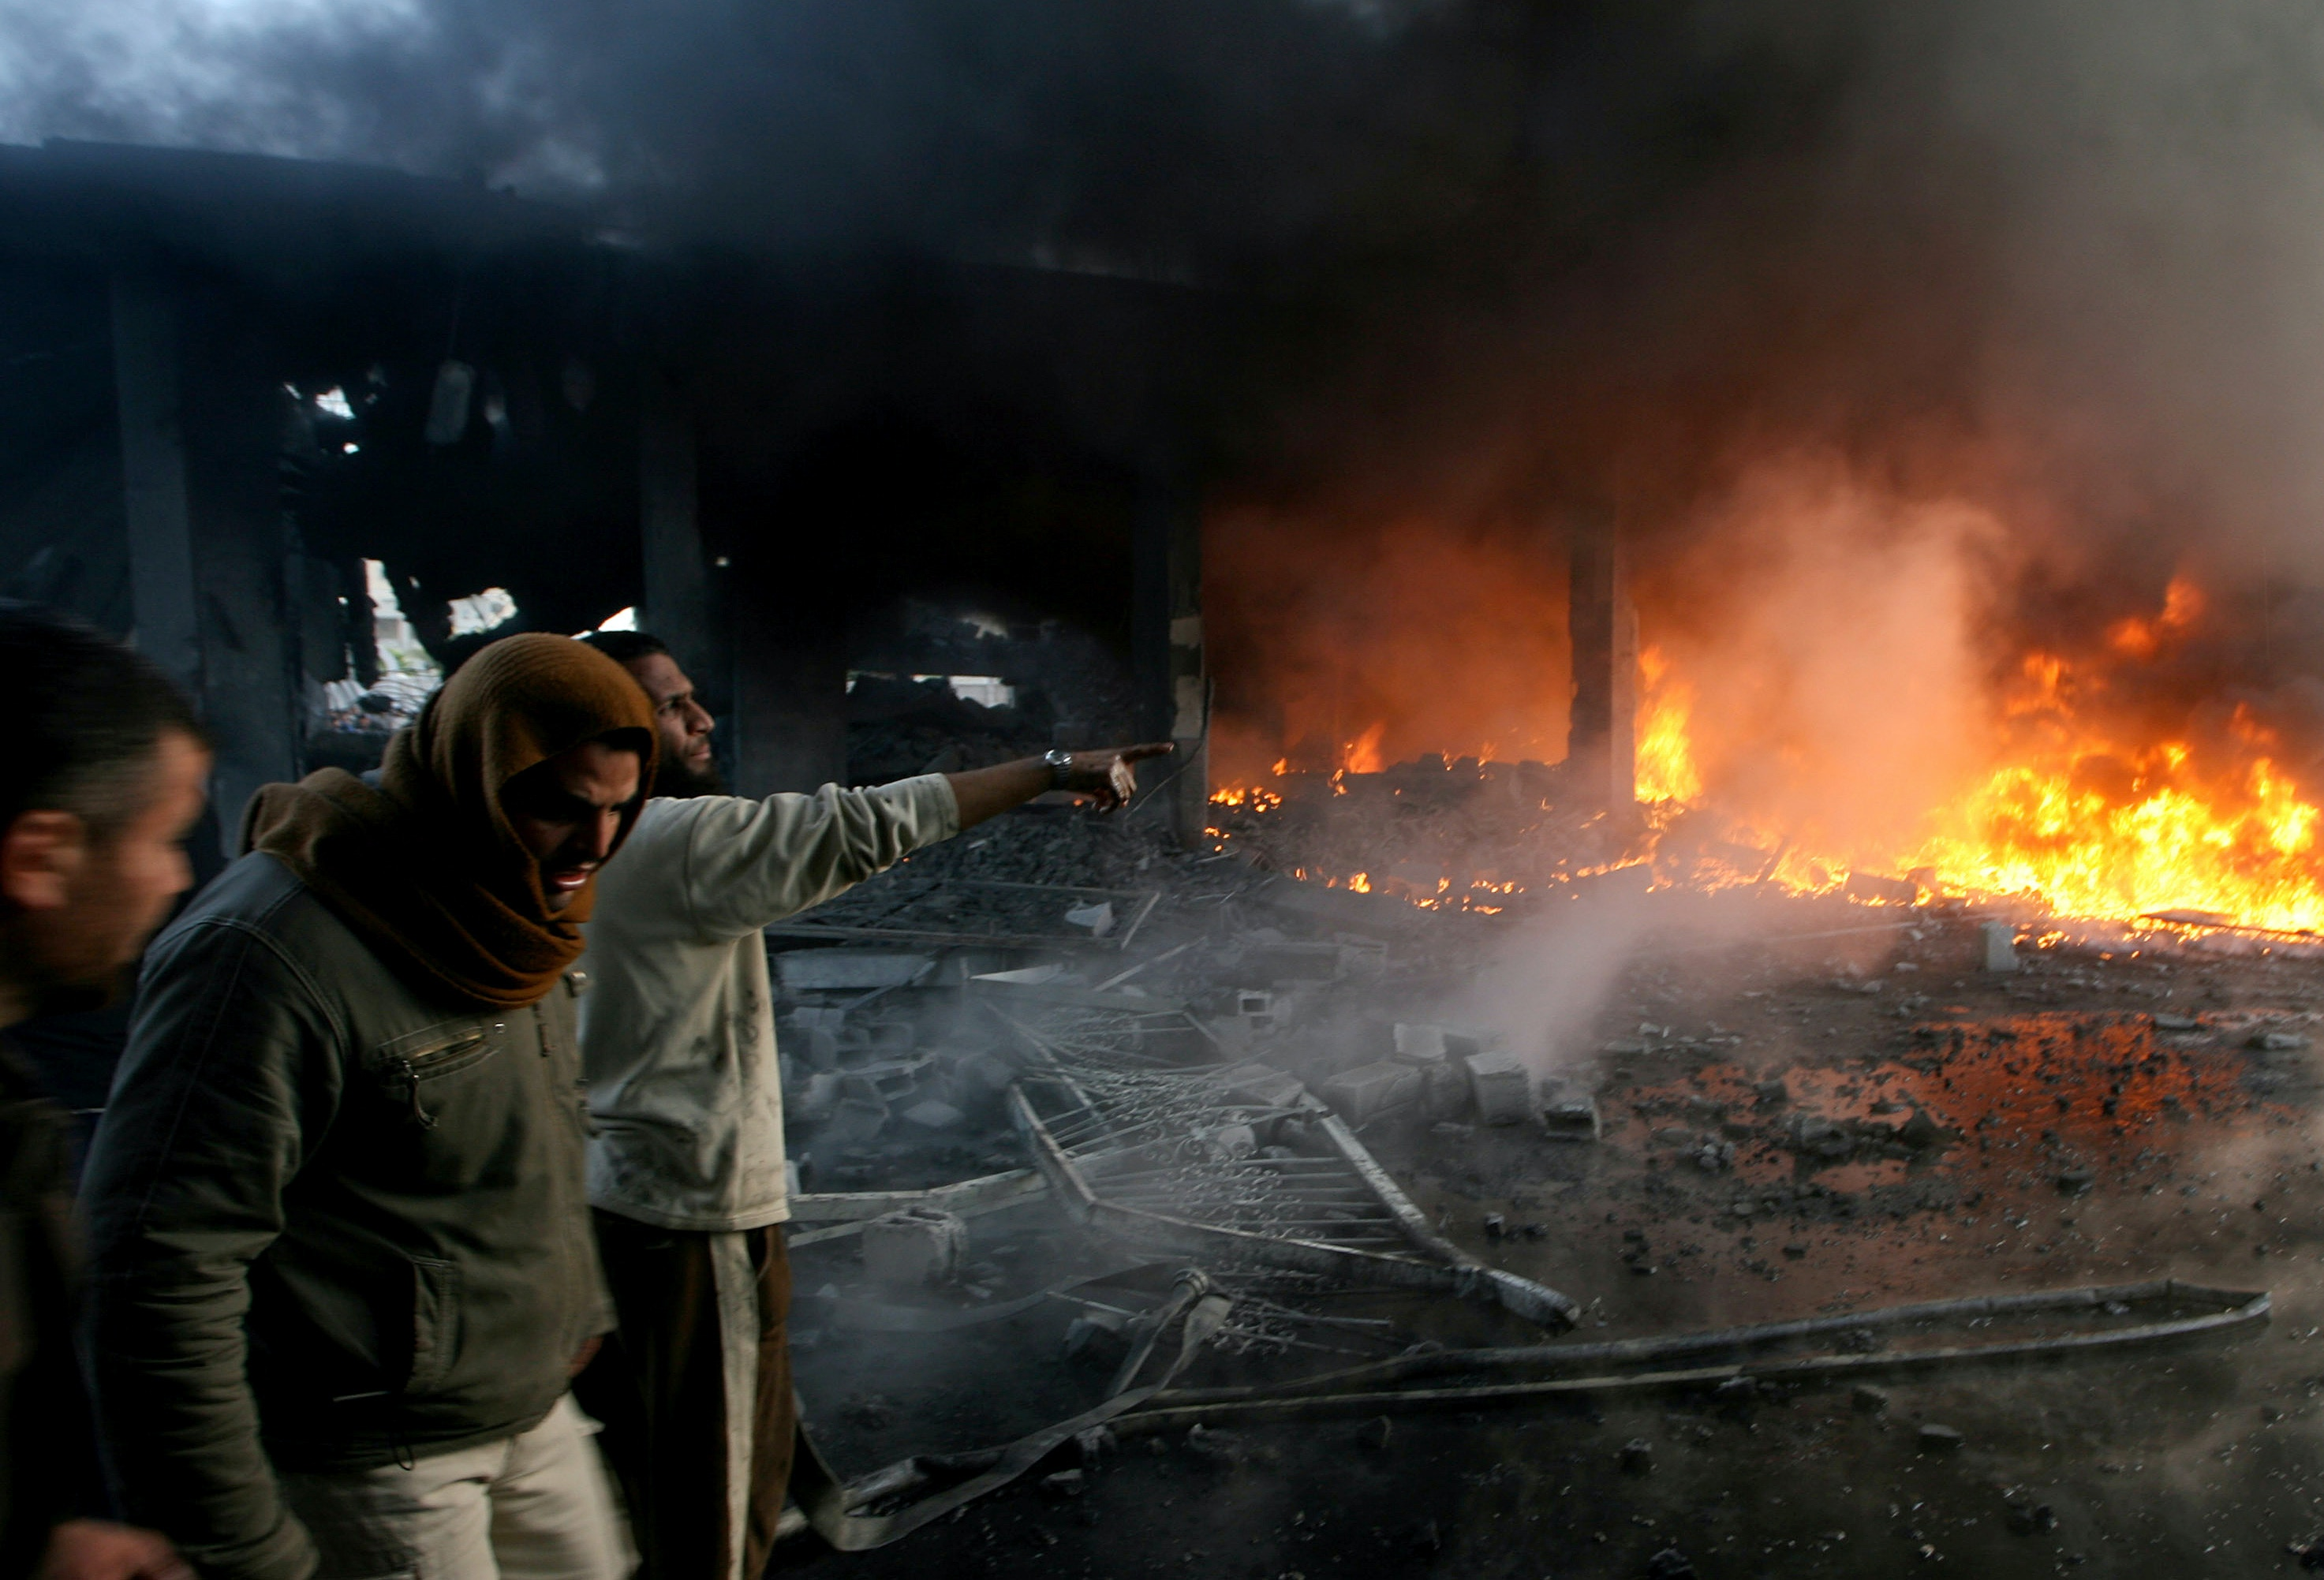 RAFAH, GAZA STRIP - DECEMBER 28:  Palestinian men look on as flames rise from debris at the site of an Israeli air strike on December 28, 2008 in Rafah, Gaza. Israel has launched further air strikes with more than 200 Palestinians reportedly killed and hundreds more wounded, in an effort to end Palestinian rocket attacks against Israeli civilian targets. (Photo Getty Images)